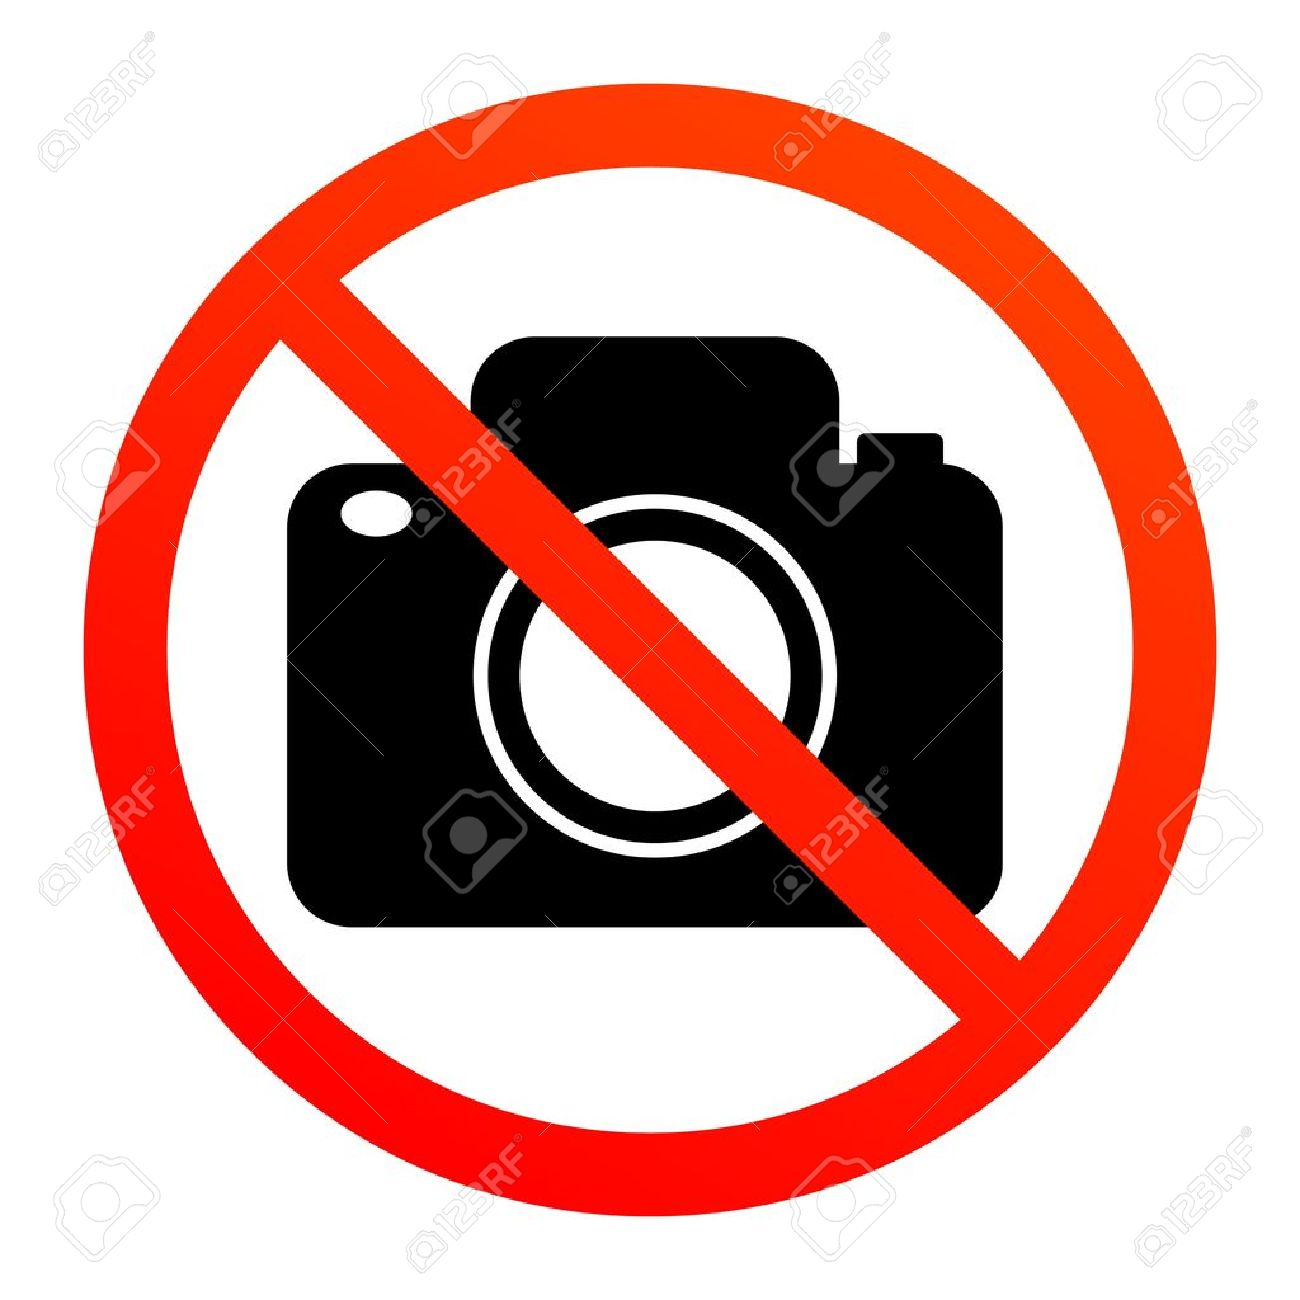 hight resolution of no photography sign stock vector 13895757